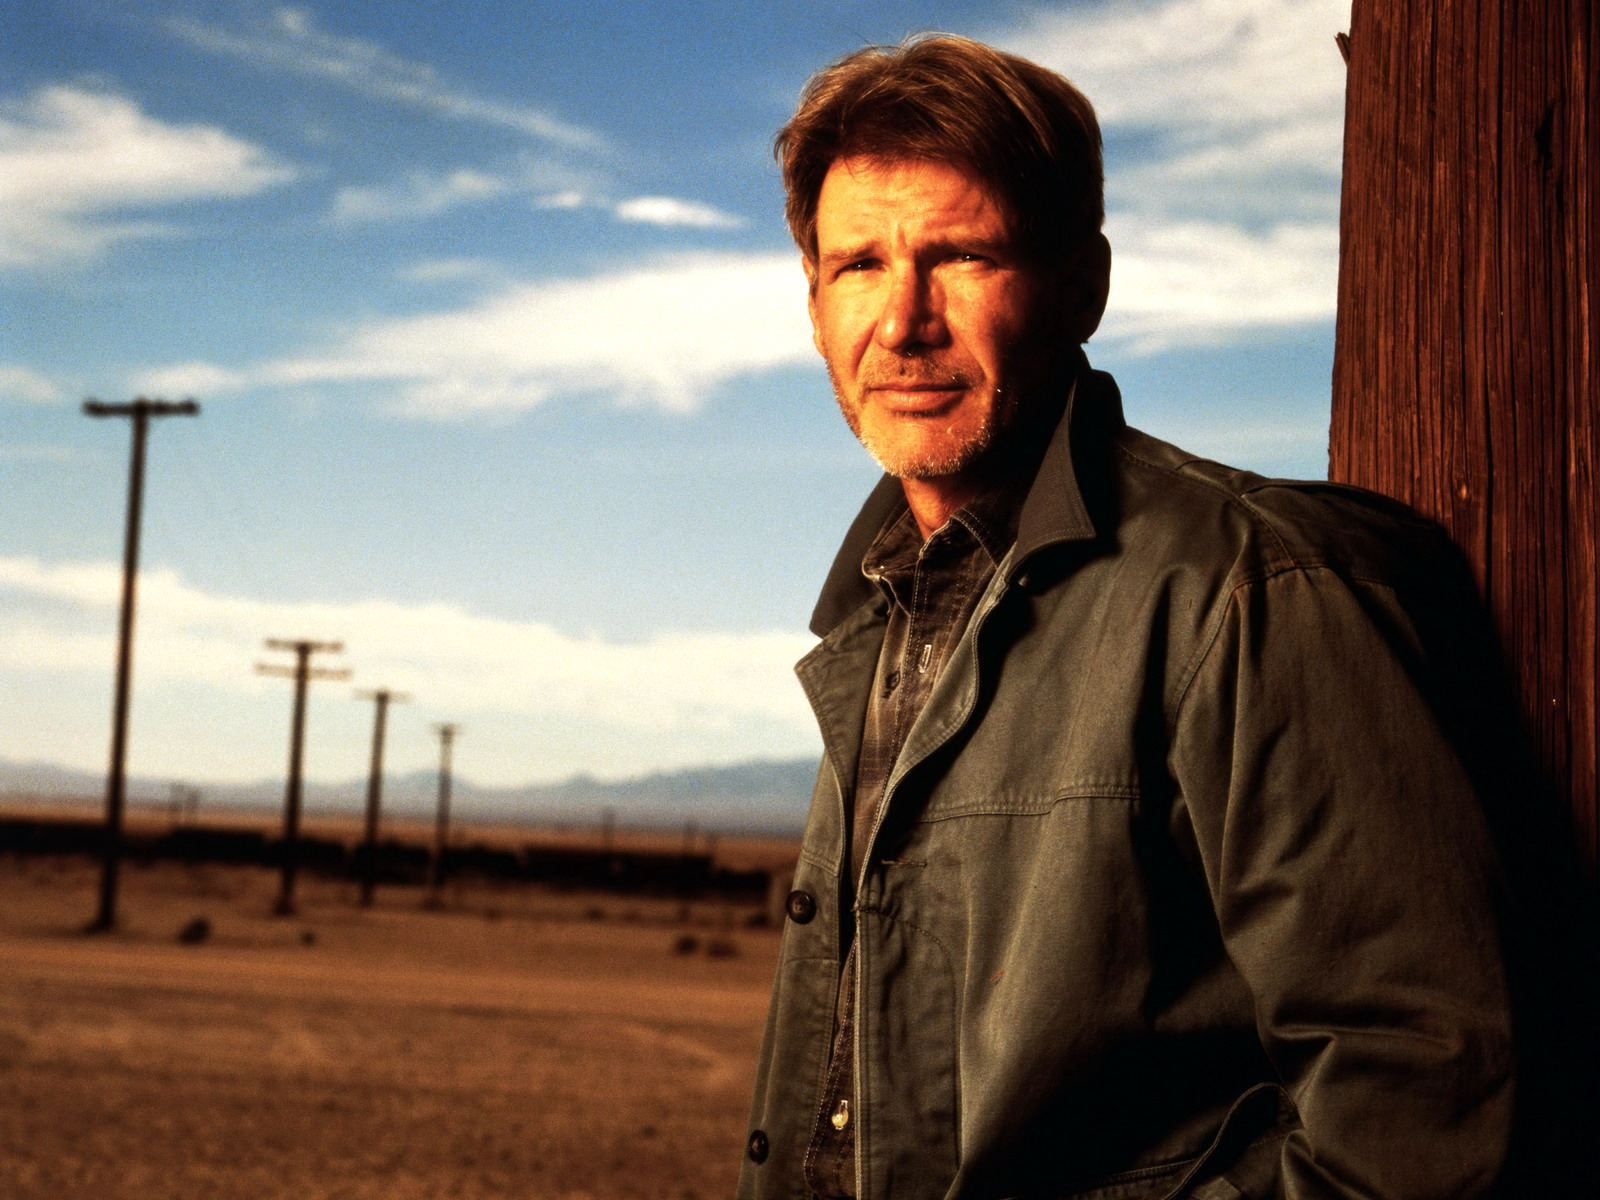 Harrison Ford Wallpapers High Resolution and Quality Download 1600x1200